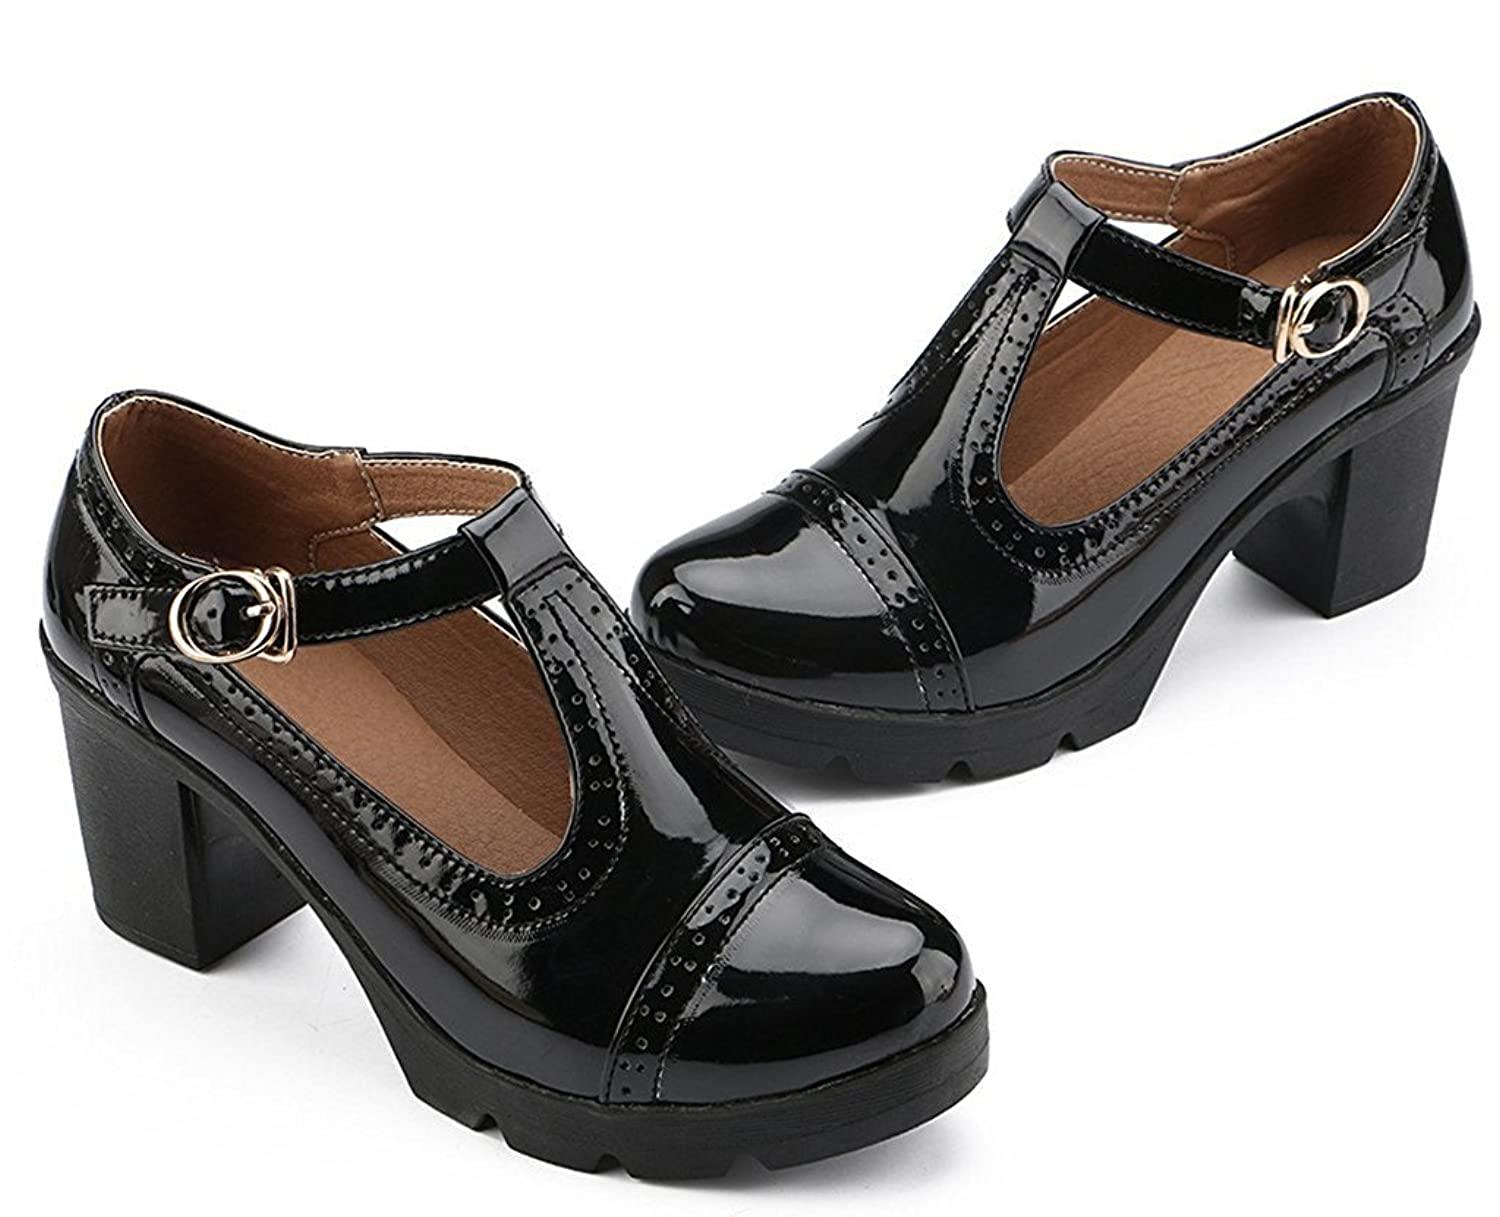 DADAWEN Women's T-Strap Platform Court Shoes Mid Heel Mary Jane Oxfords  Dress Shoes: Amazon.co.uk: Shoes & Bags